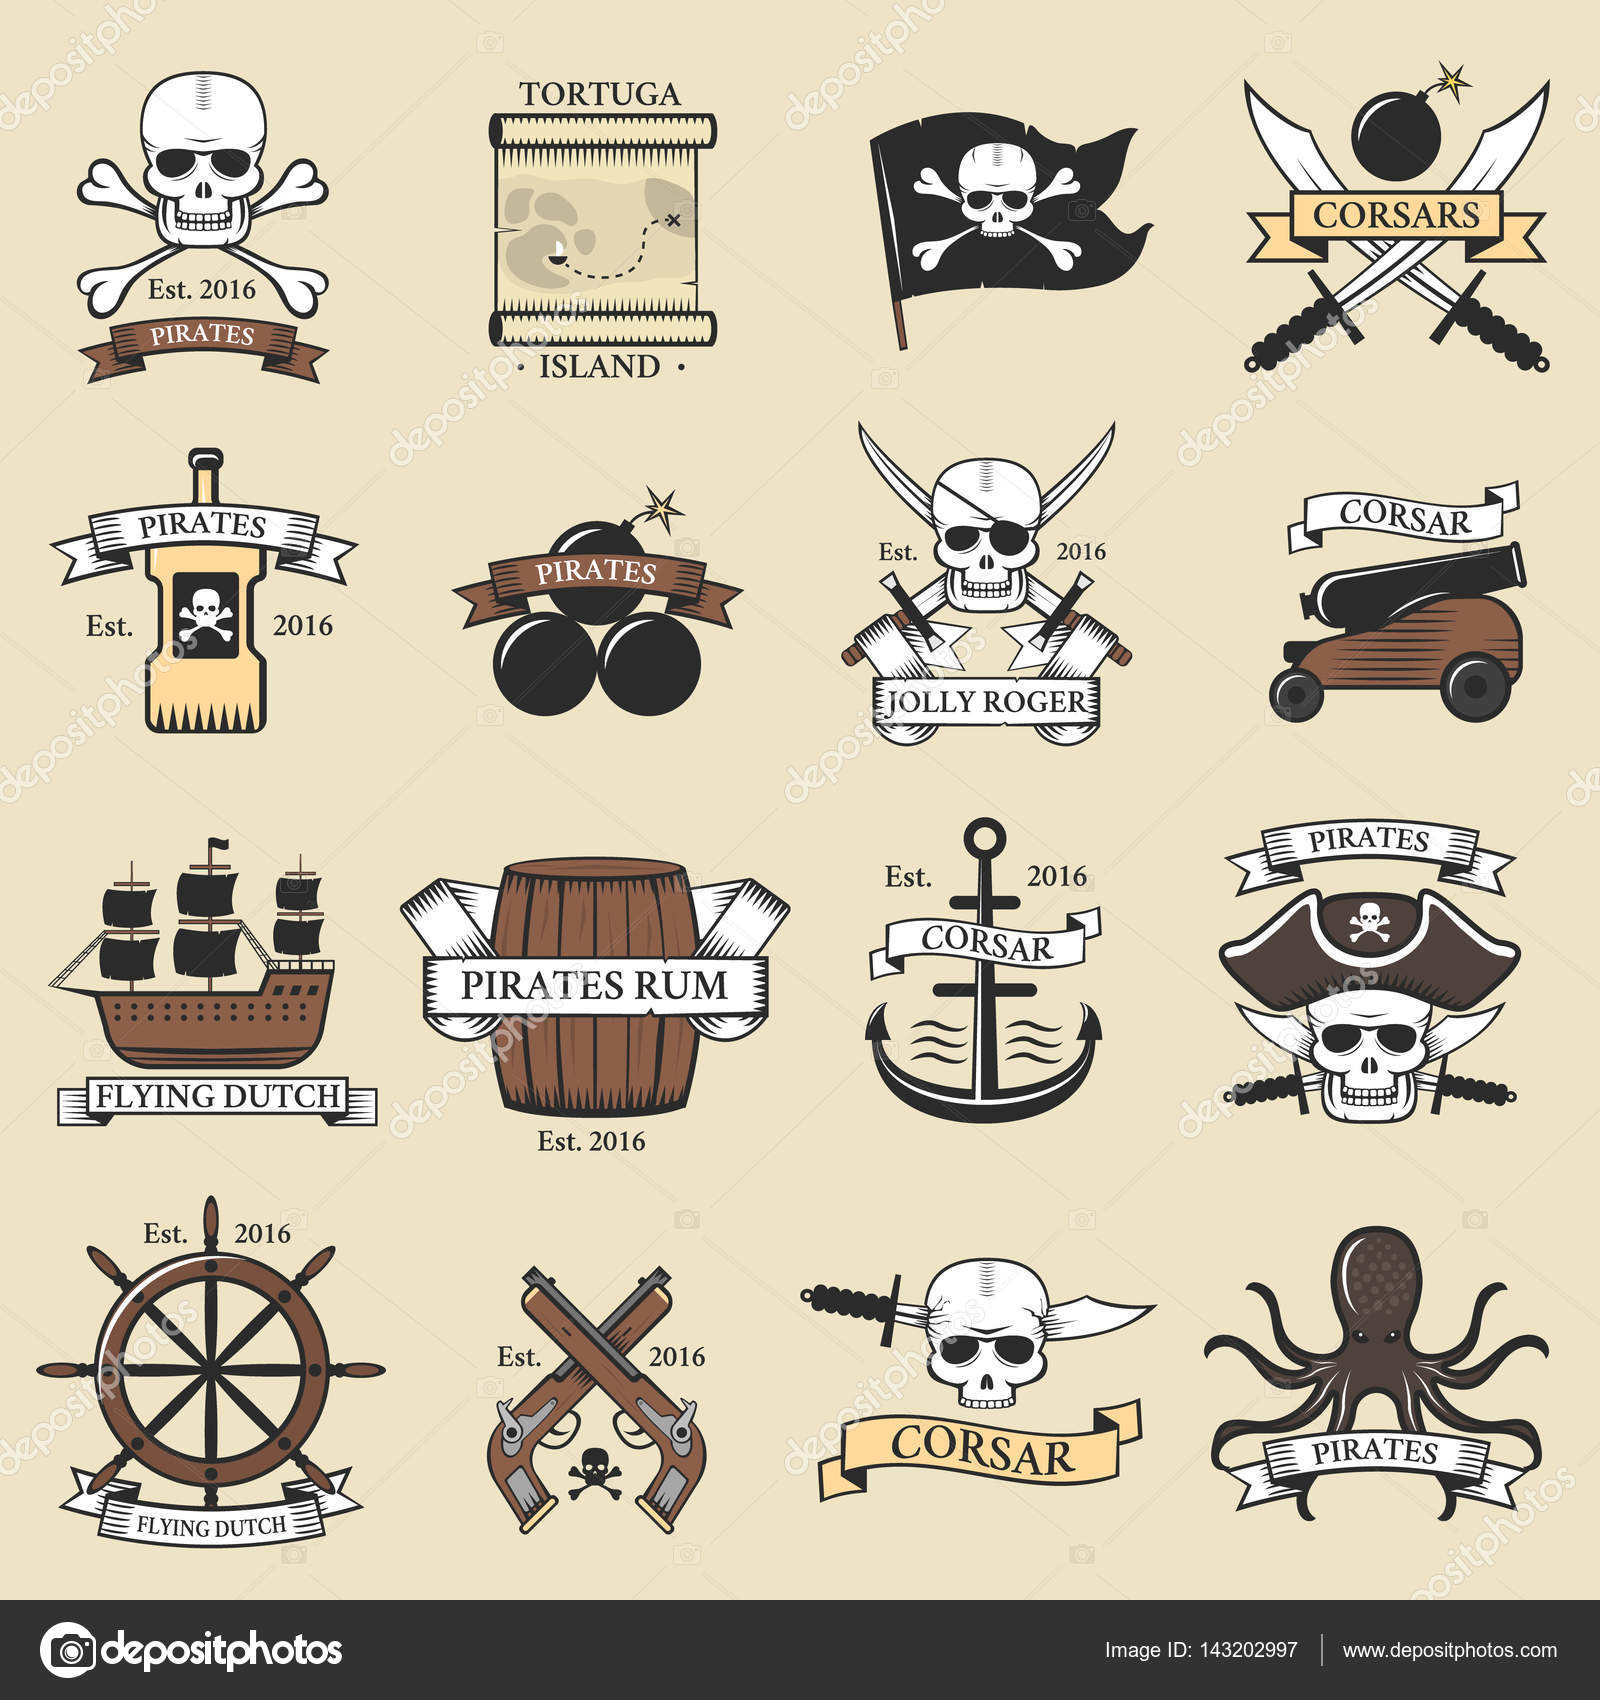 Modern professional pirate logo marine badges nautical sword old modern professional pirate logo marine badges nautical sword old skeleton banner template and skull roger sea pronofoot35fo Images